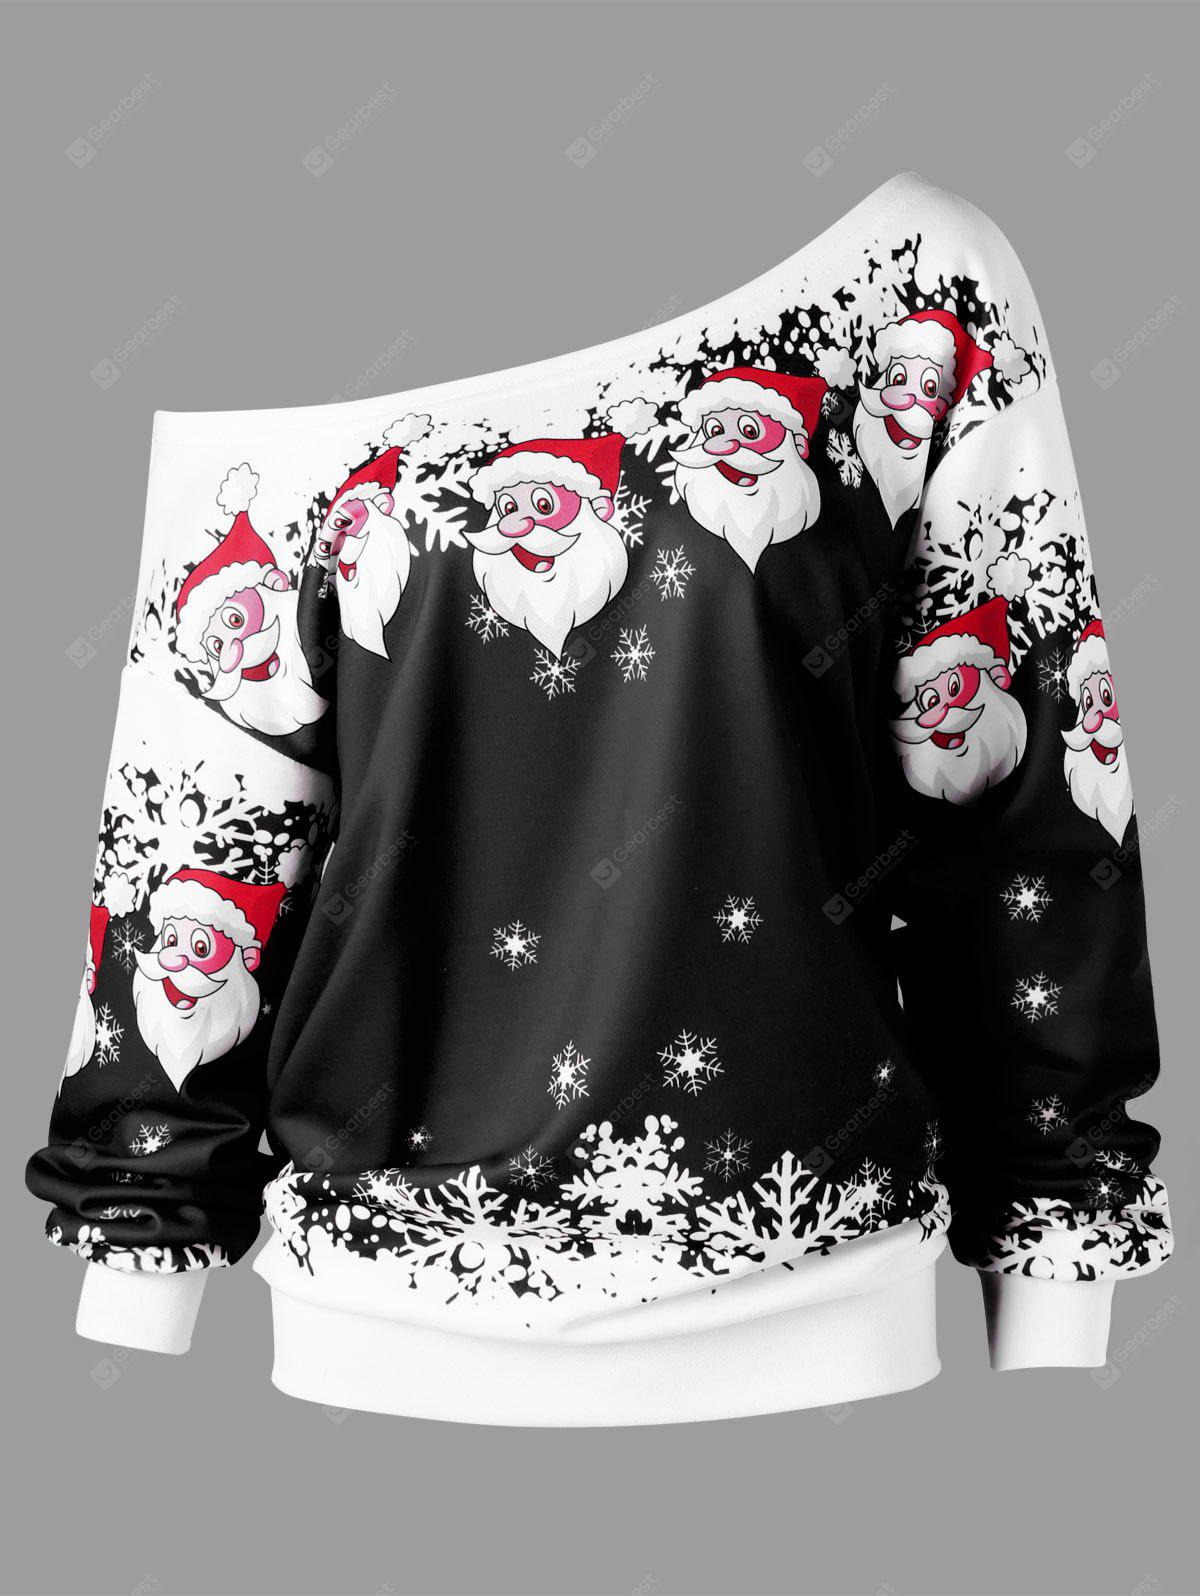 Christmas Plus Size Santa Claus Skew Collar Sweatshirt